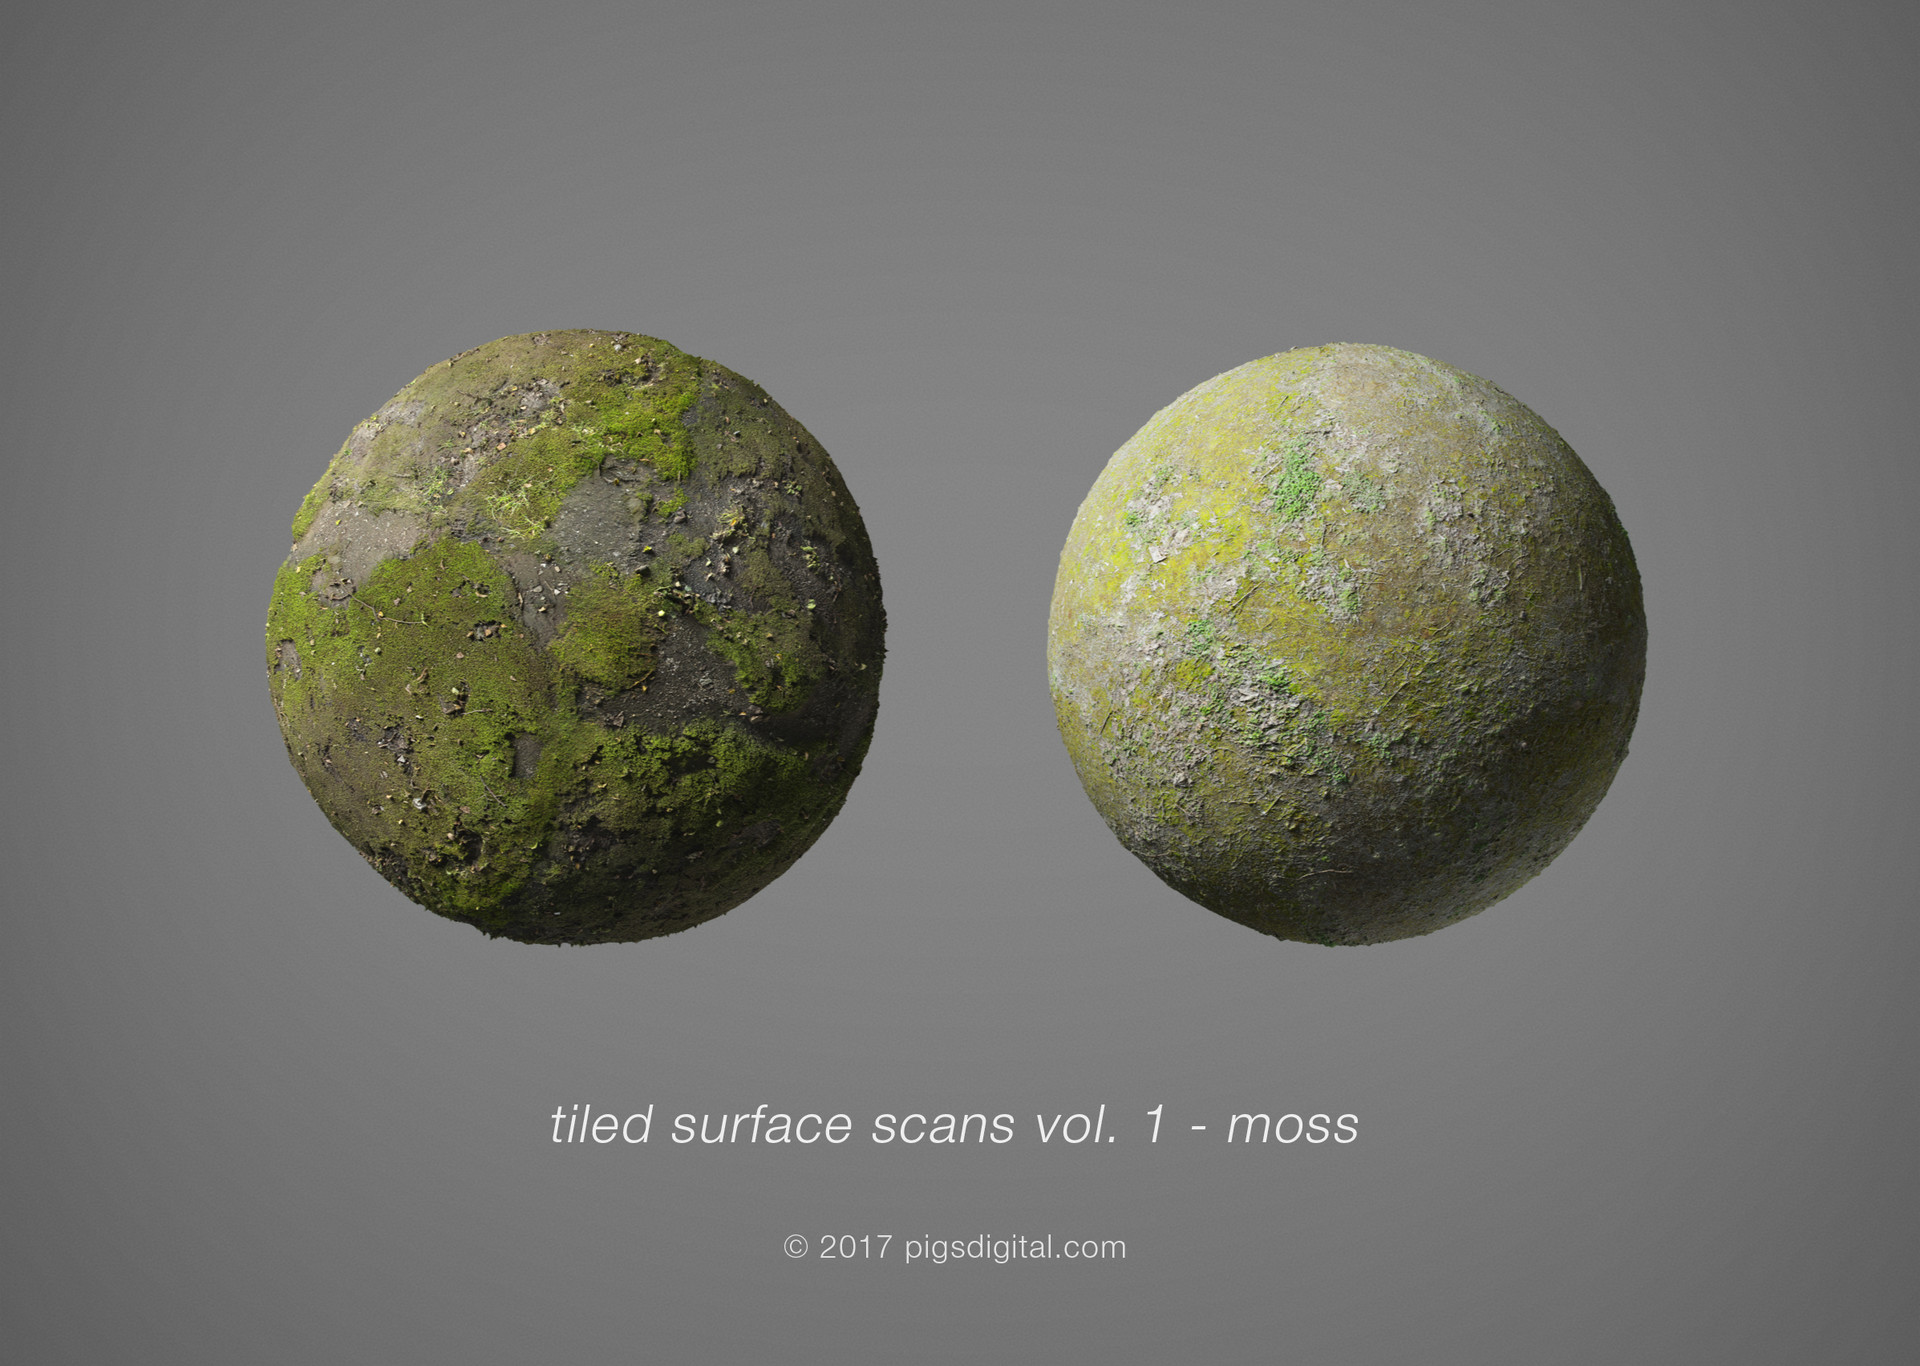 Vitaly varna tiled surface scans vol 1 moss